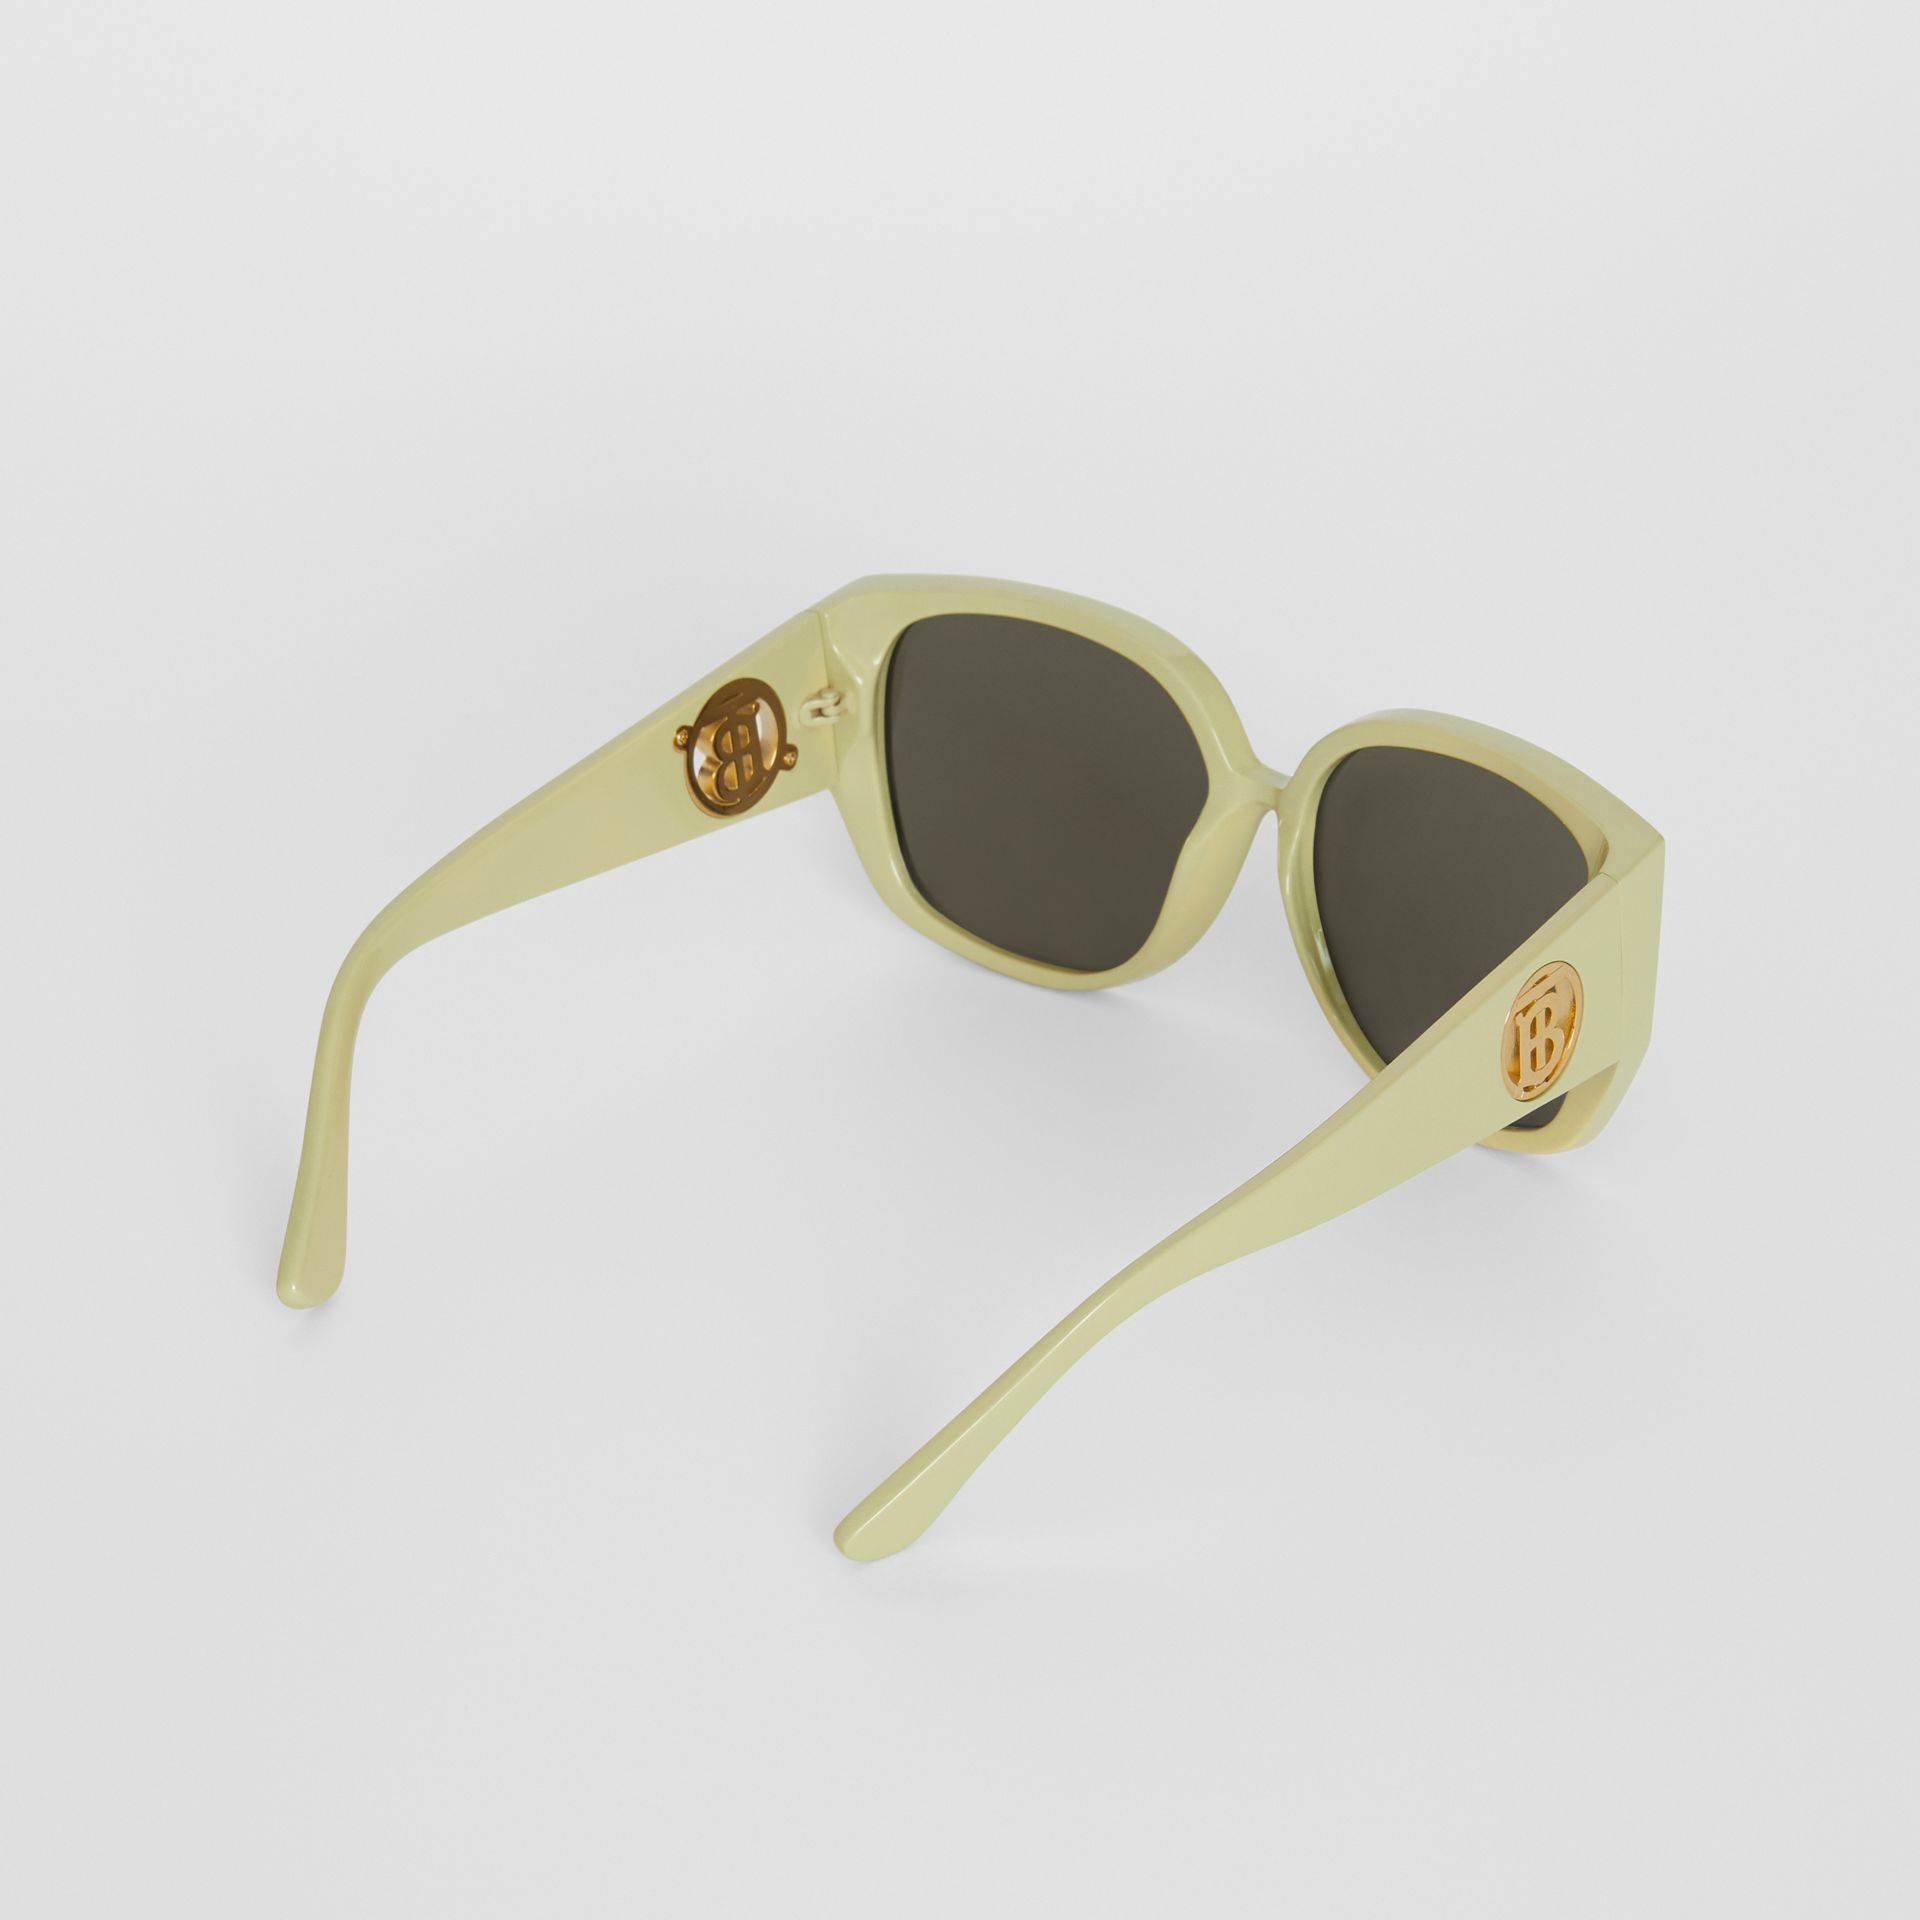 Oversized Butterfly Frame Sunglasses in Pistachio - Women | Burberry Singapore - gallery image 4